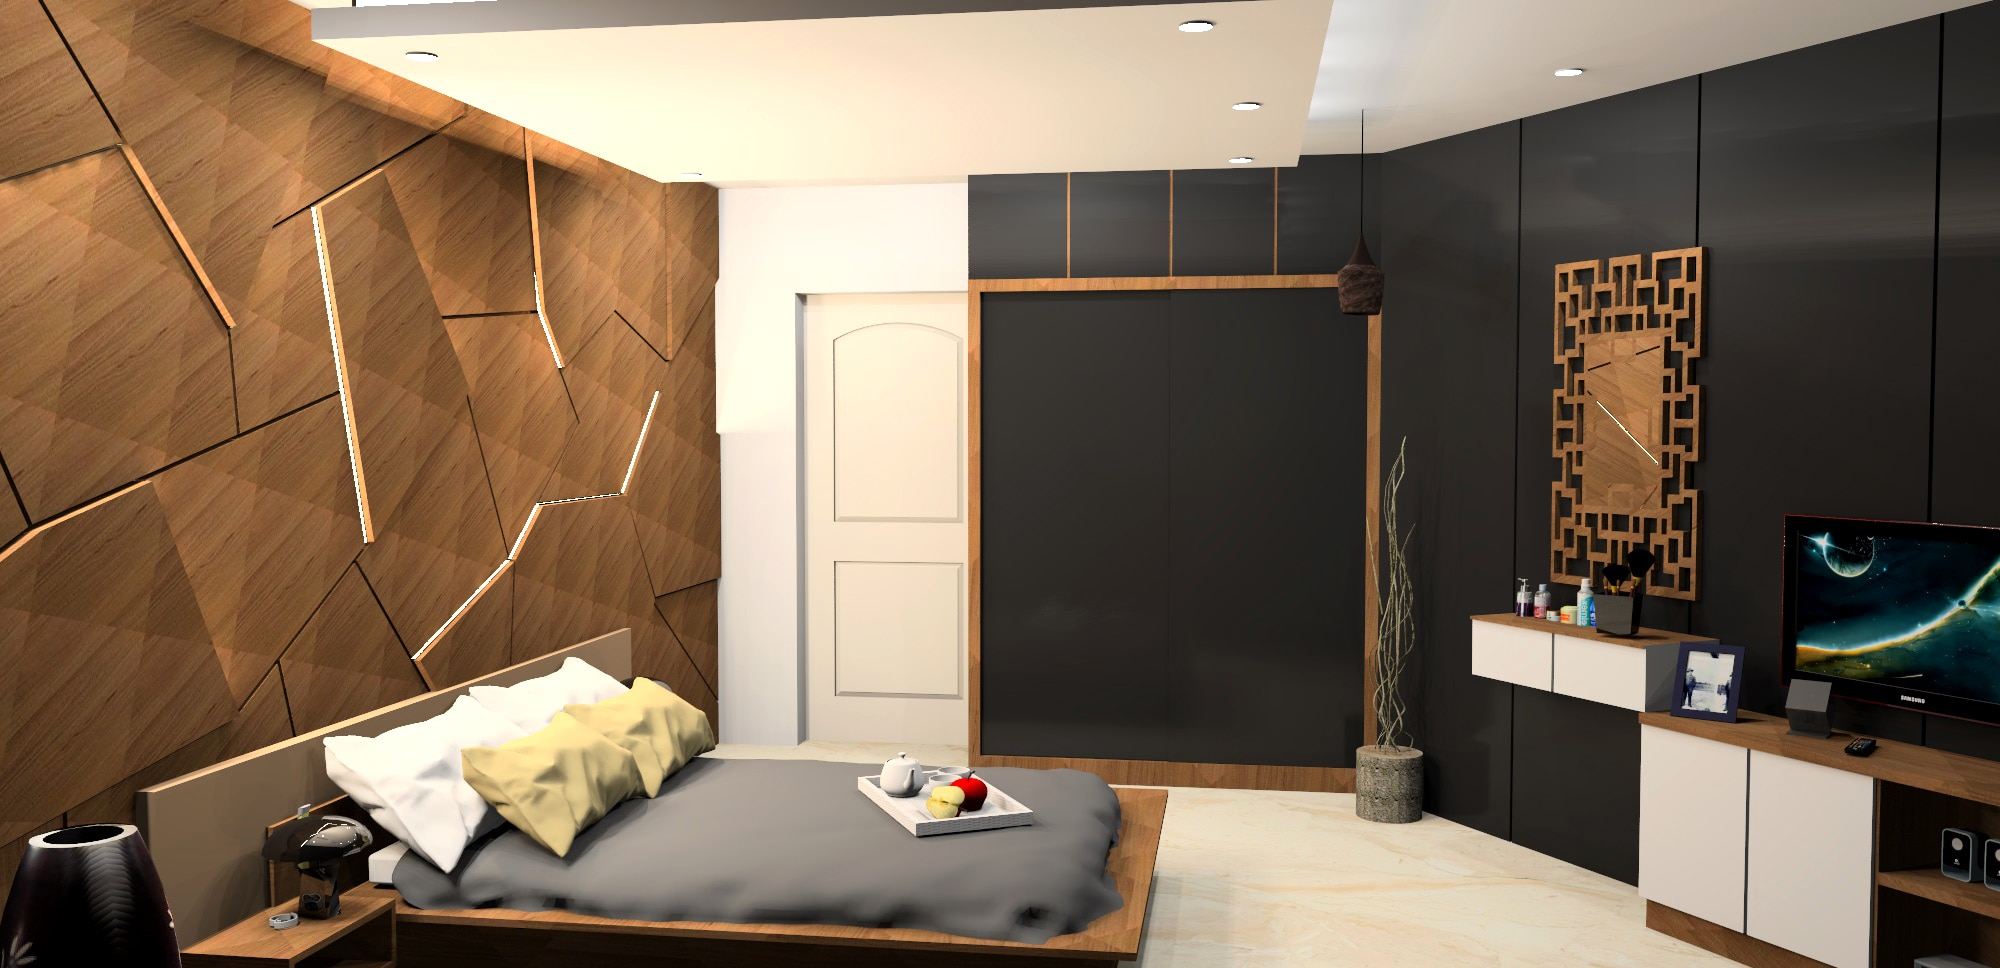 Master Bedroom Design - This is an inspiration to eclectic